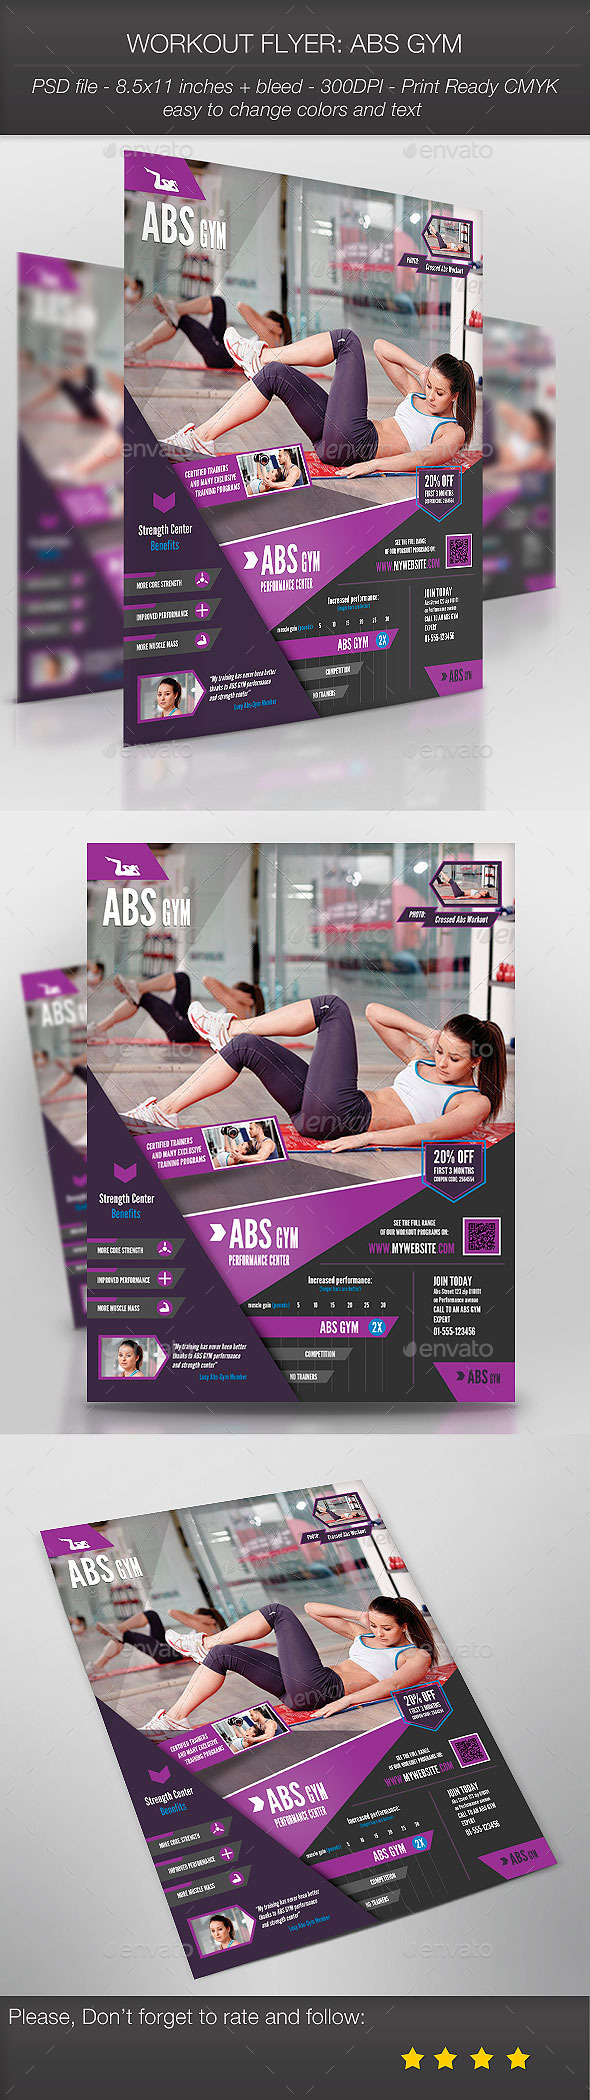 Workout Flyer: Abs Gym - Sports Events